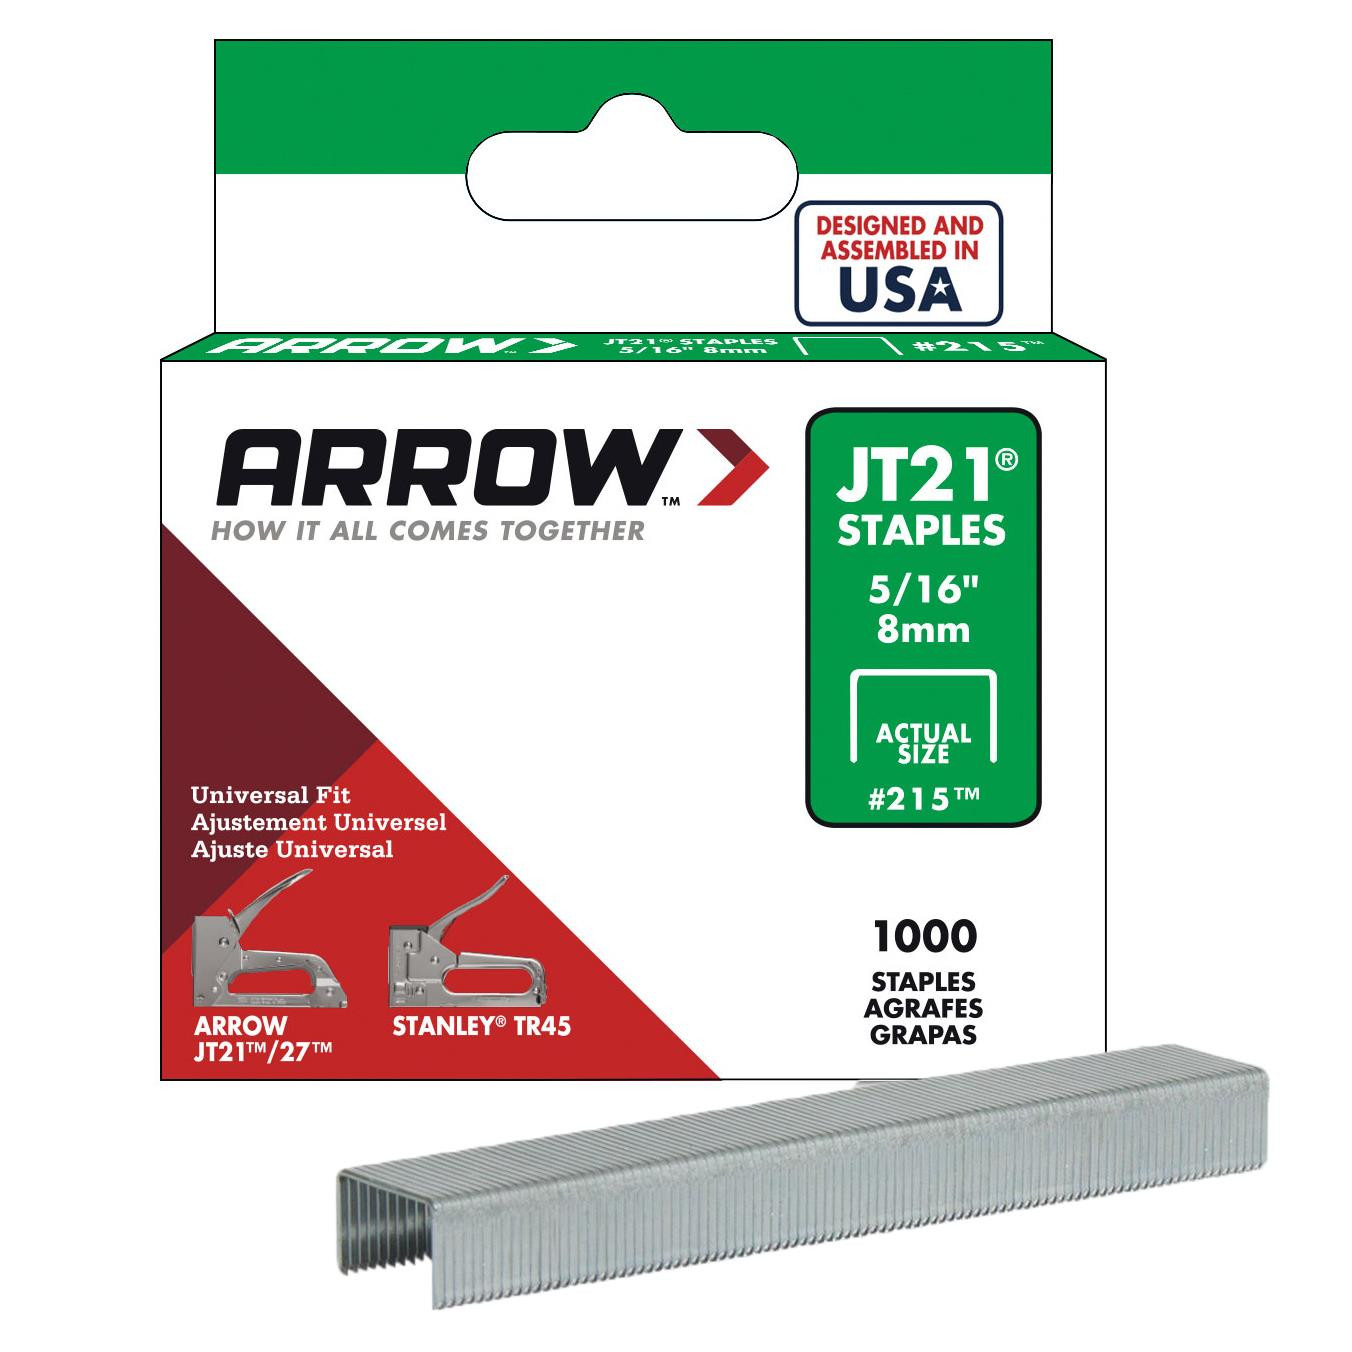 Arrow AR215 8mm 1000 PCs Professional Staple Wire